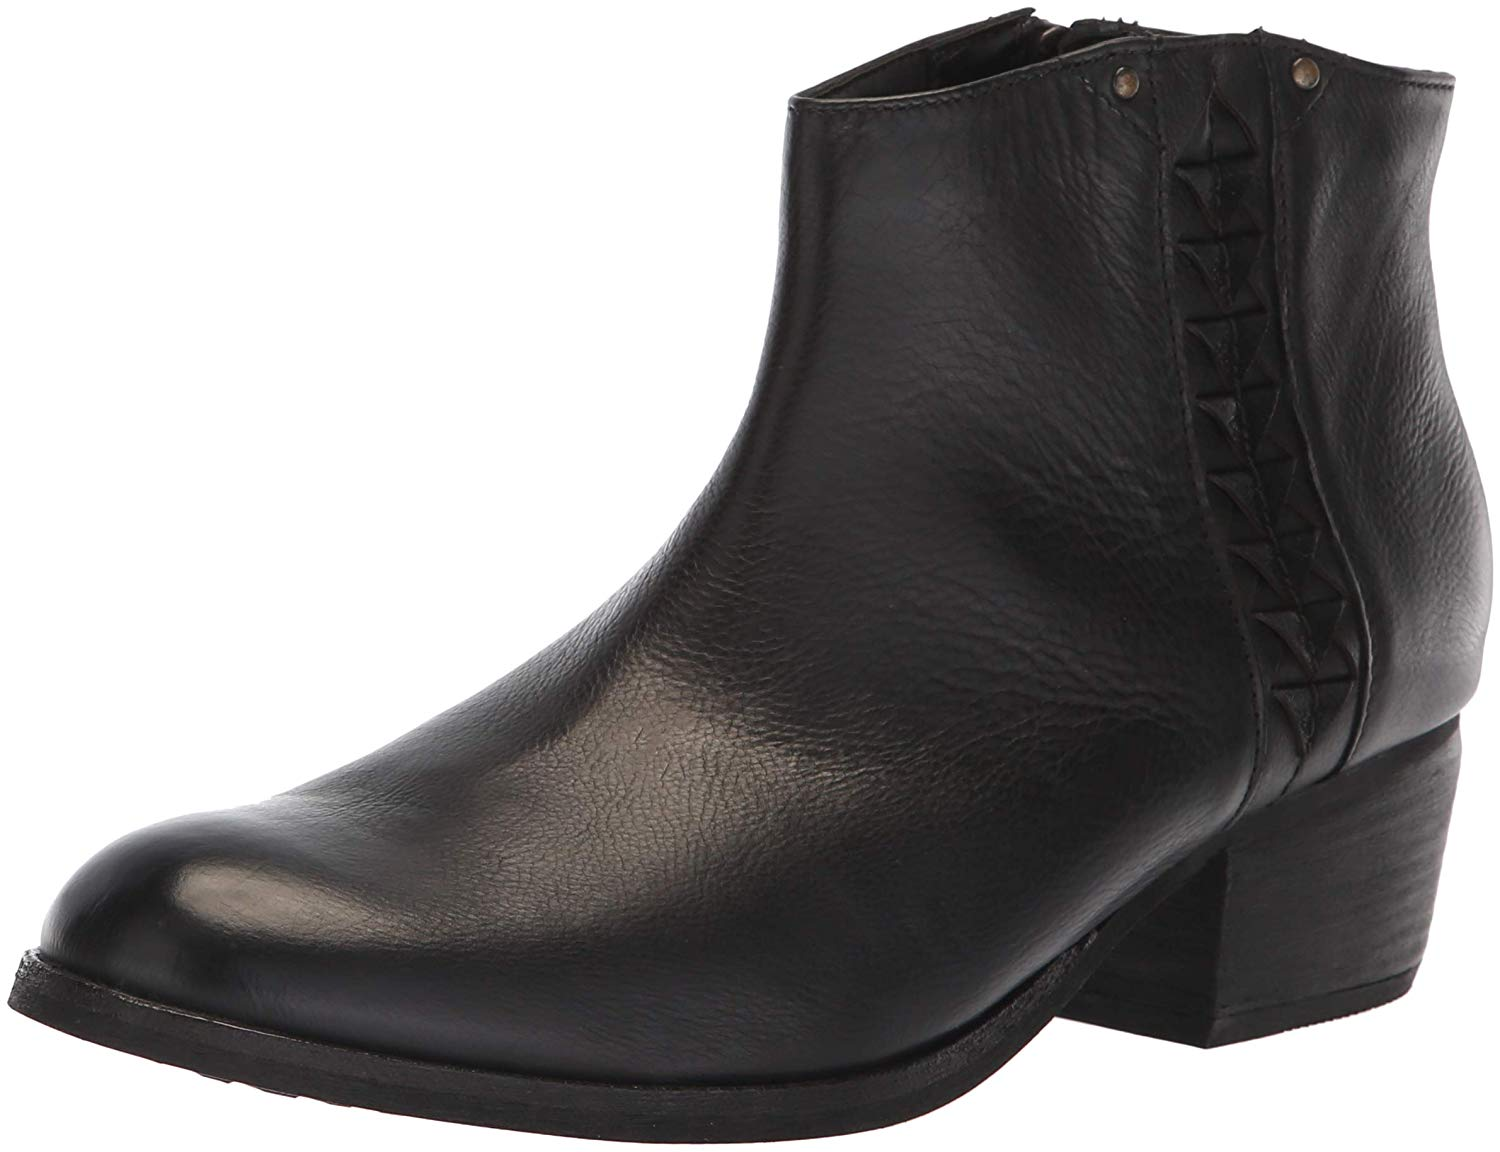 78959755dfb CLARKS Women s Maypearl Fawn Fashion Boot